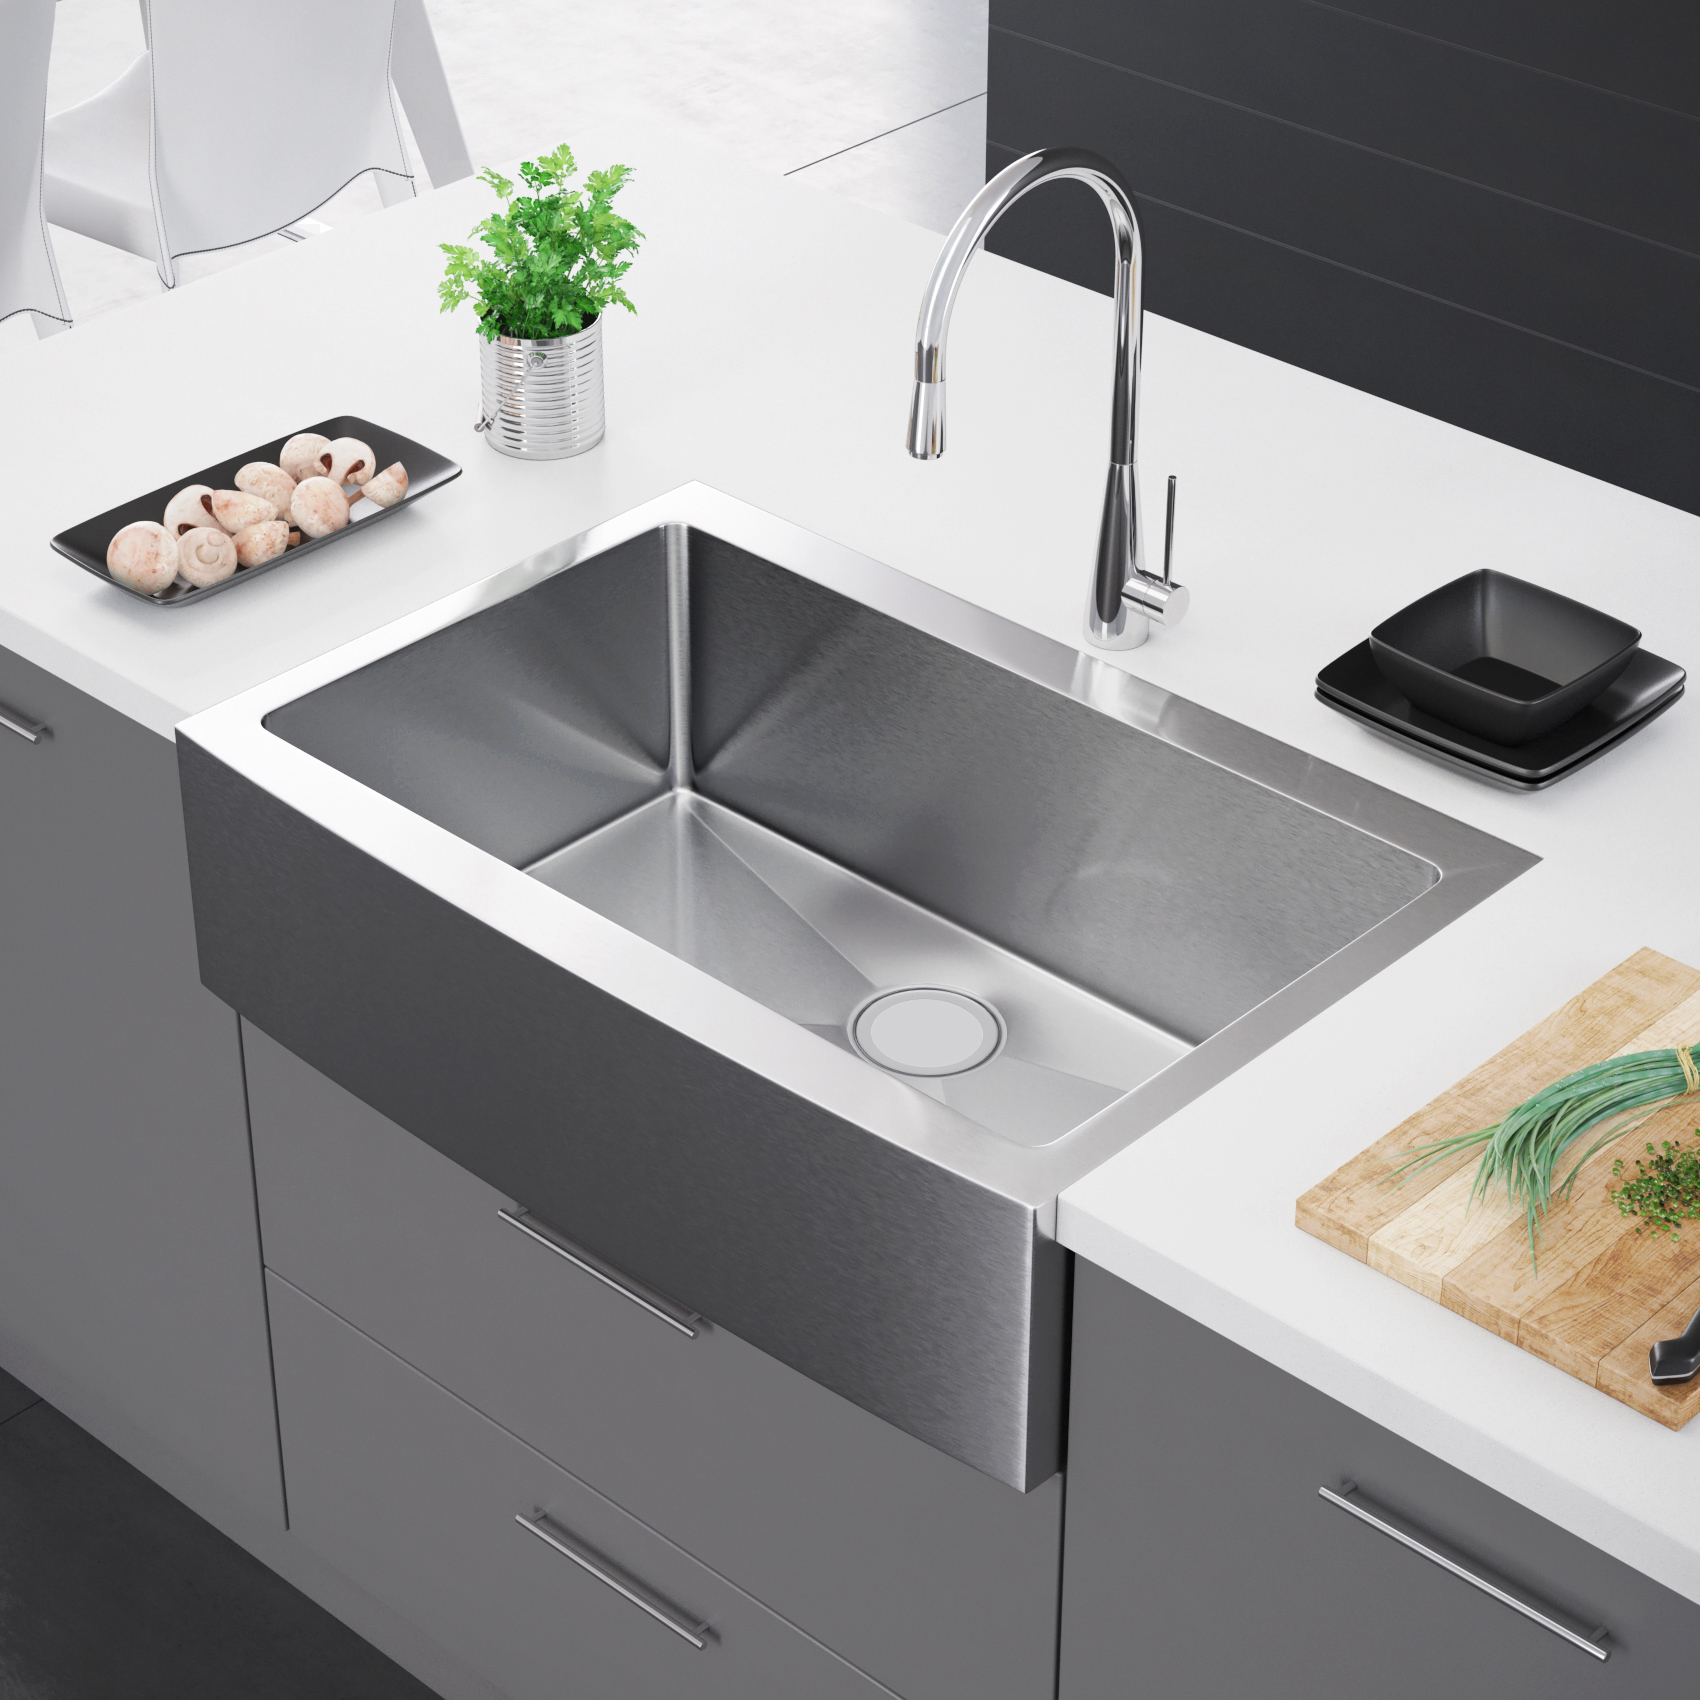 Kitchen Sink Average Price